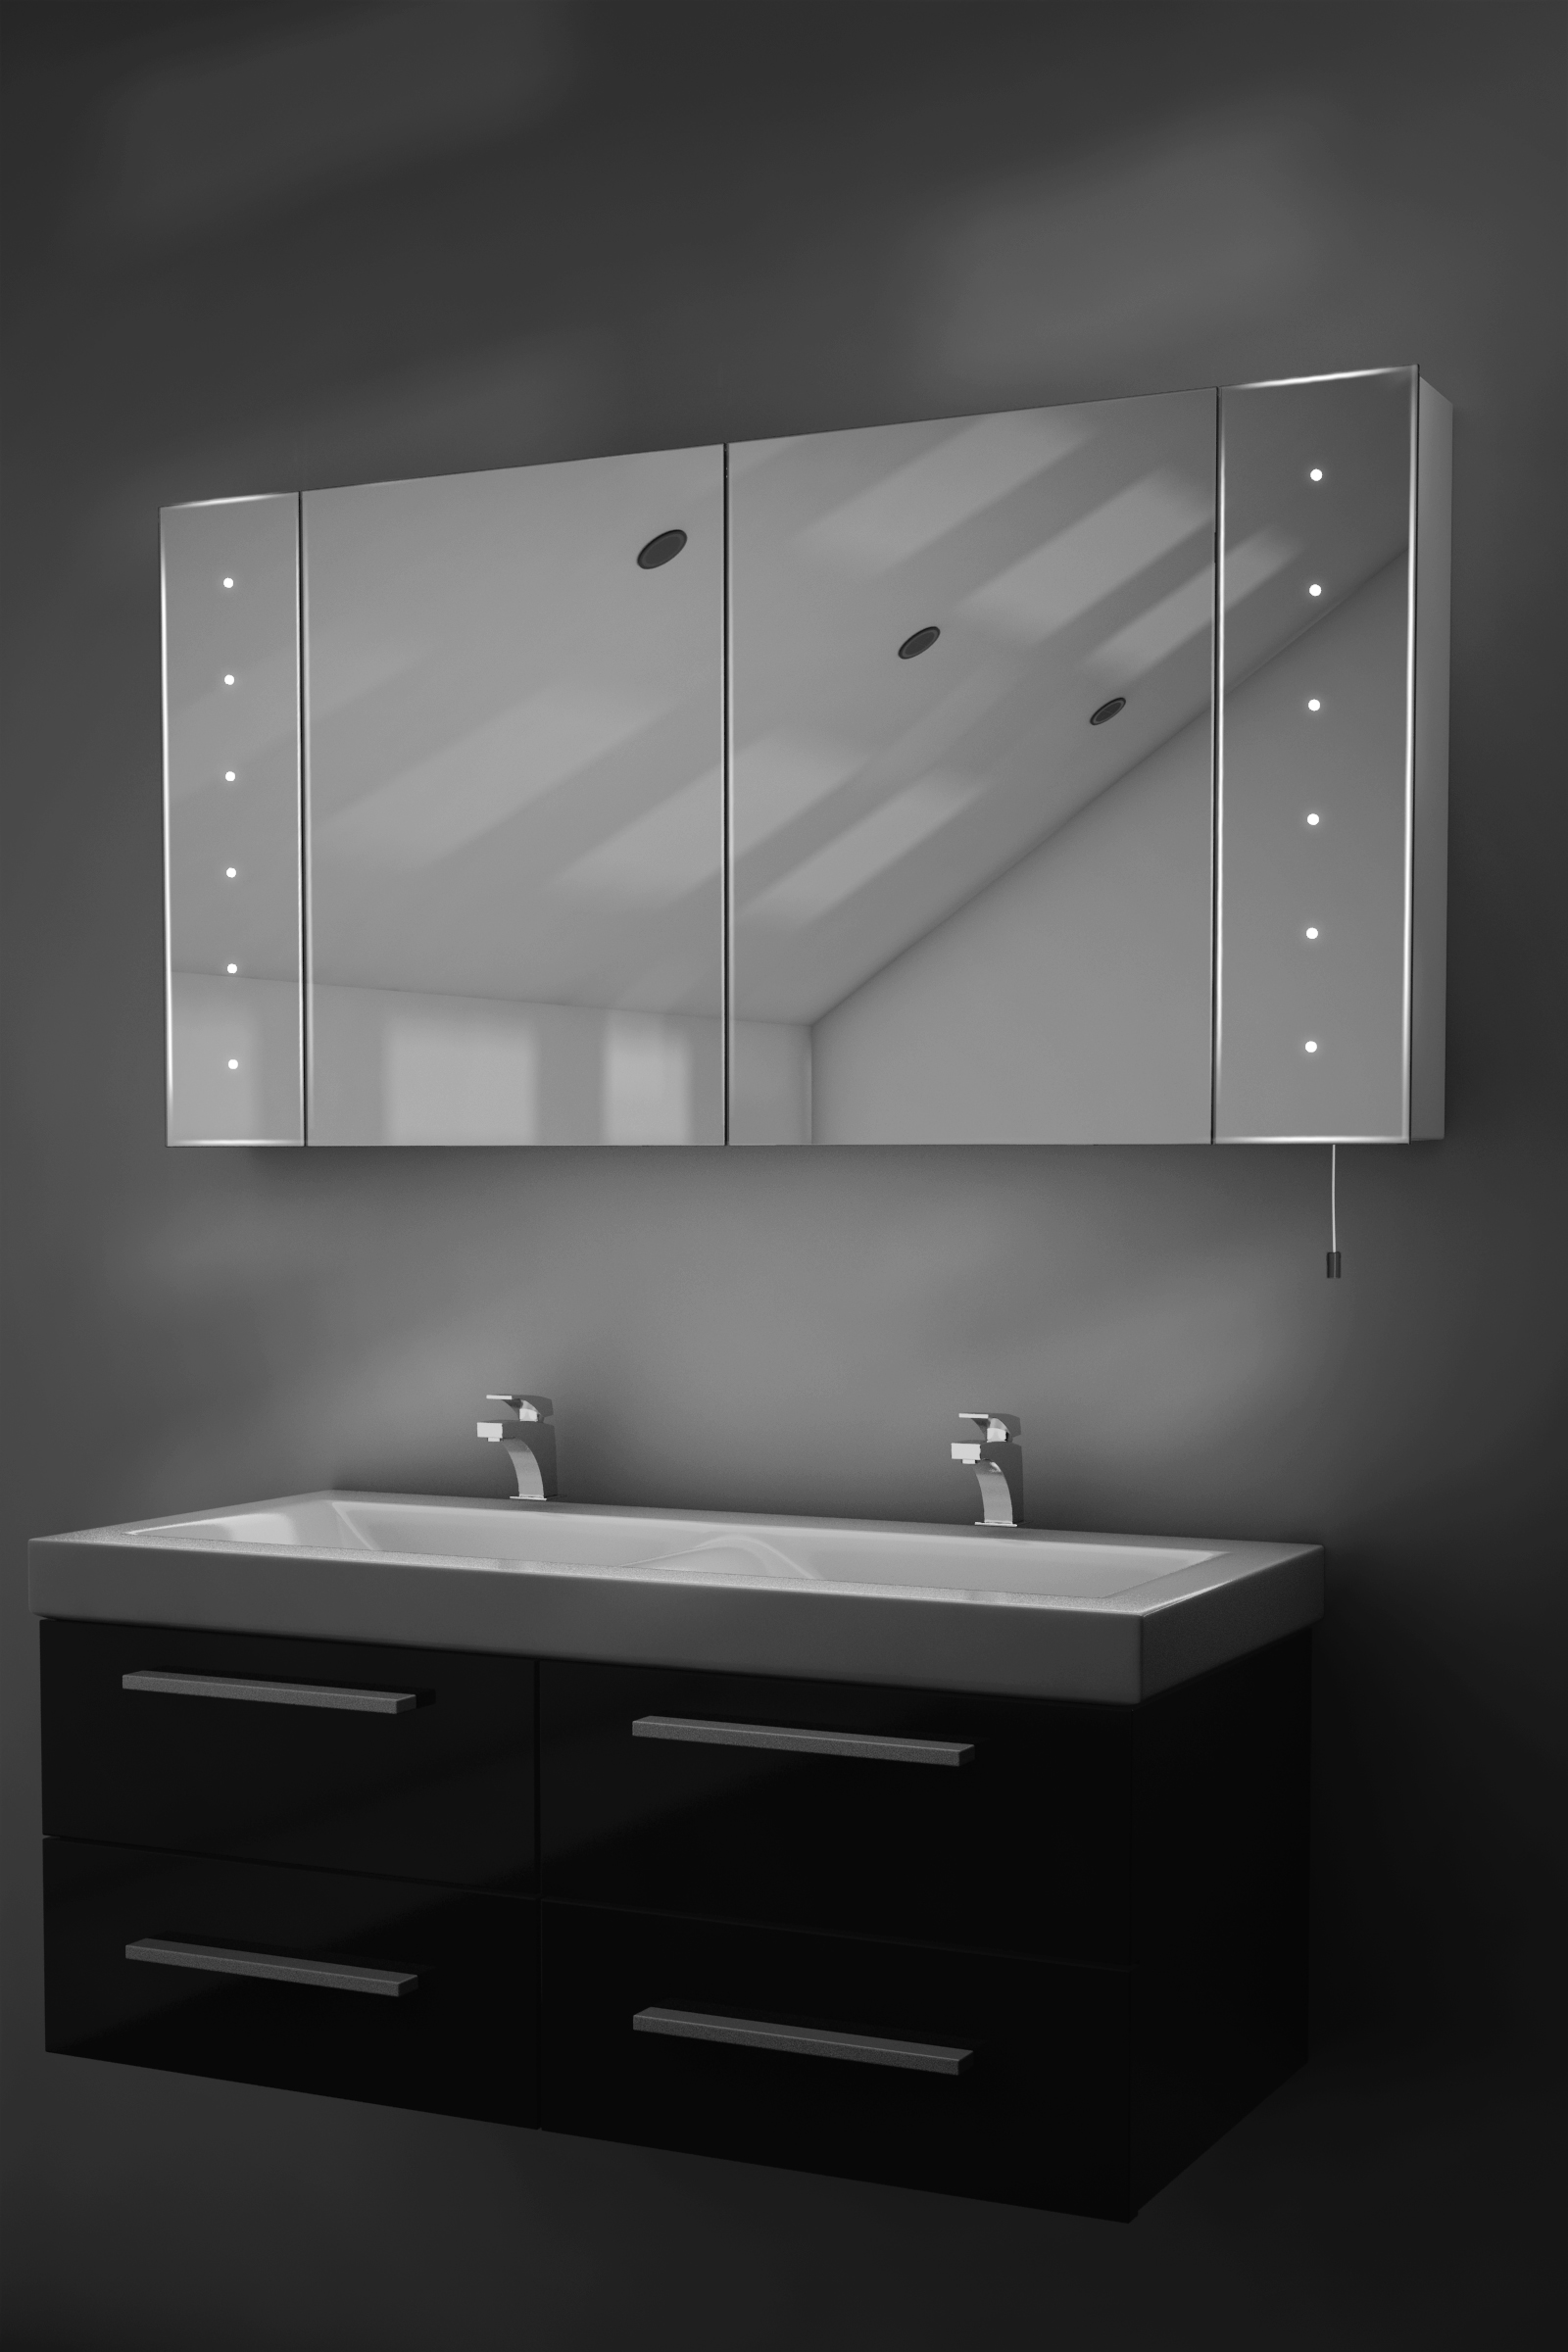 Karma led illuminated battery bathroom mirror cabinet with for Bathroom cabinets led